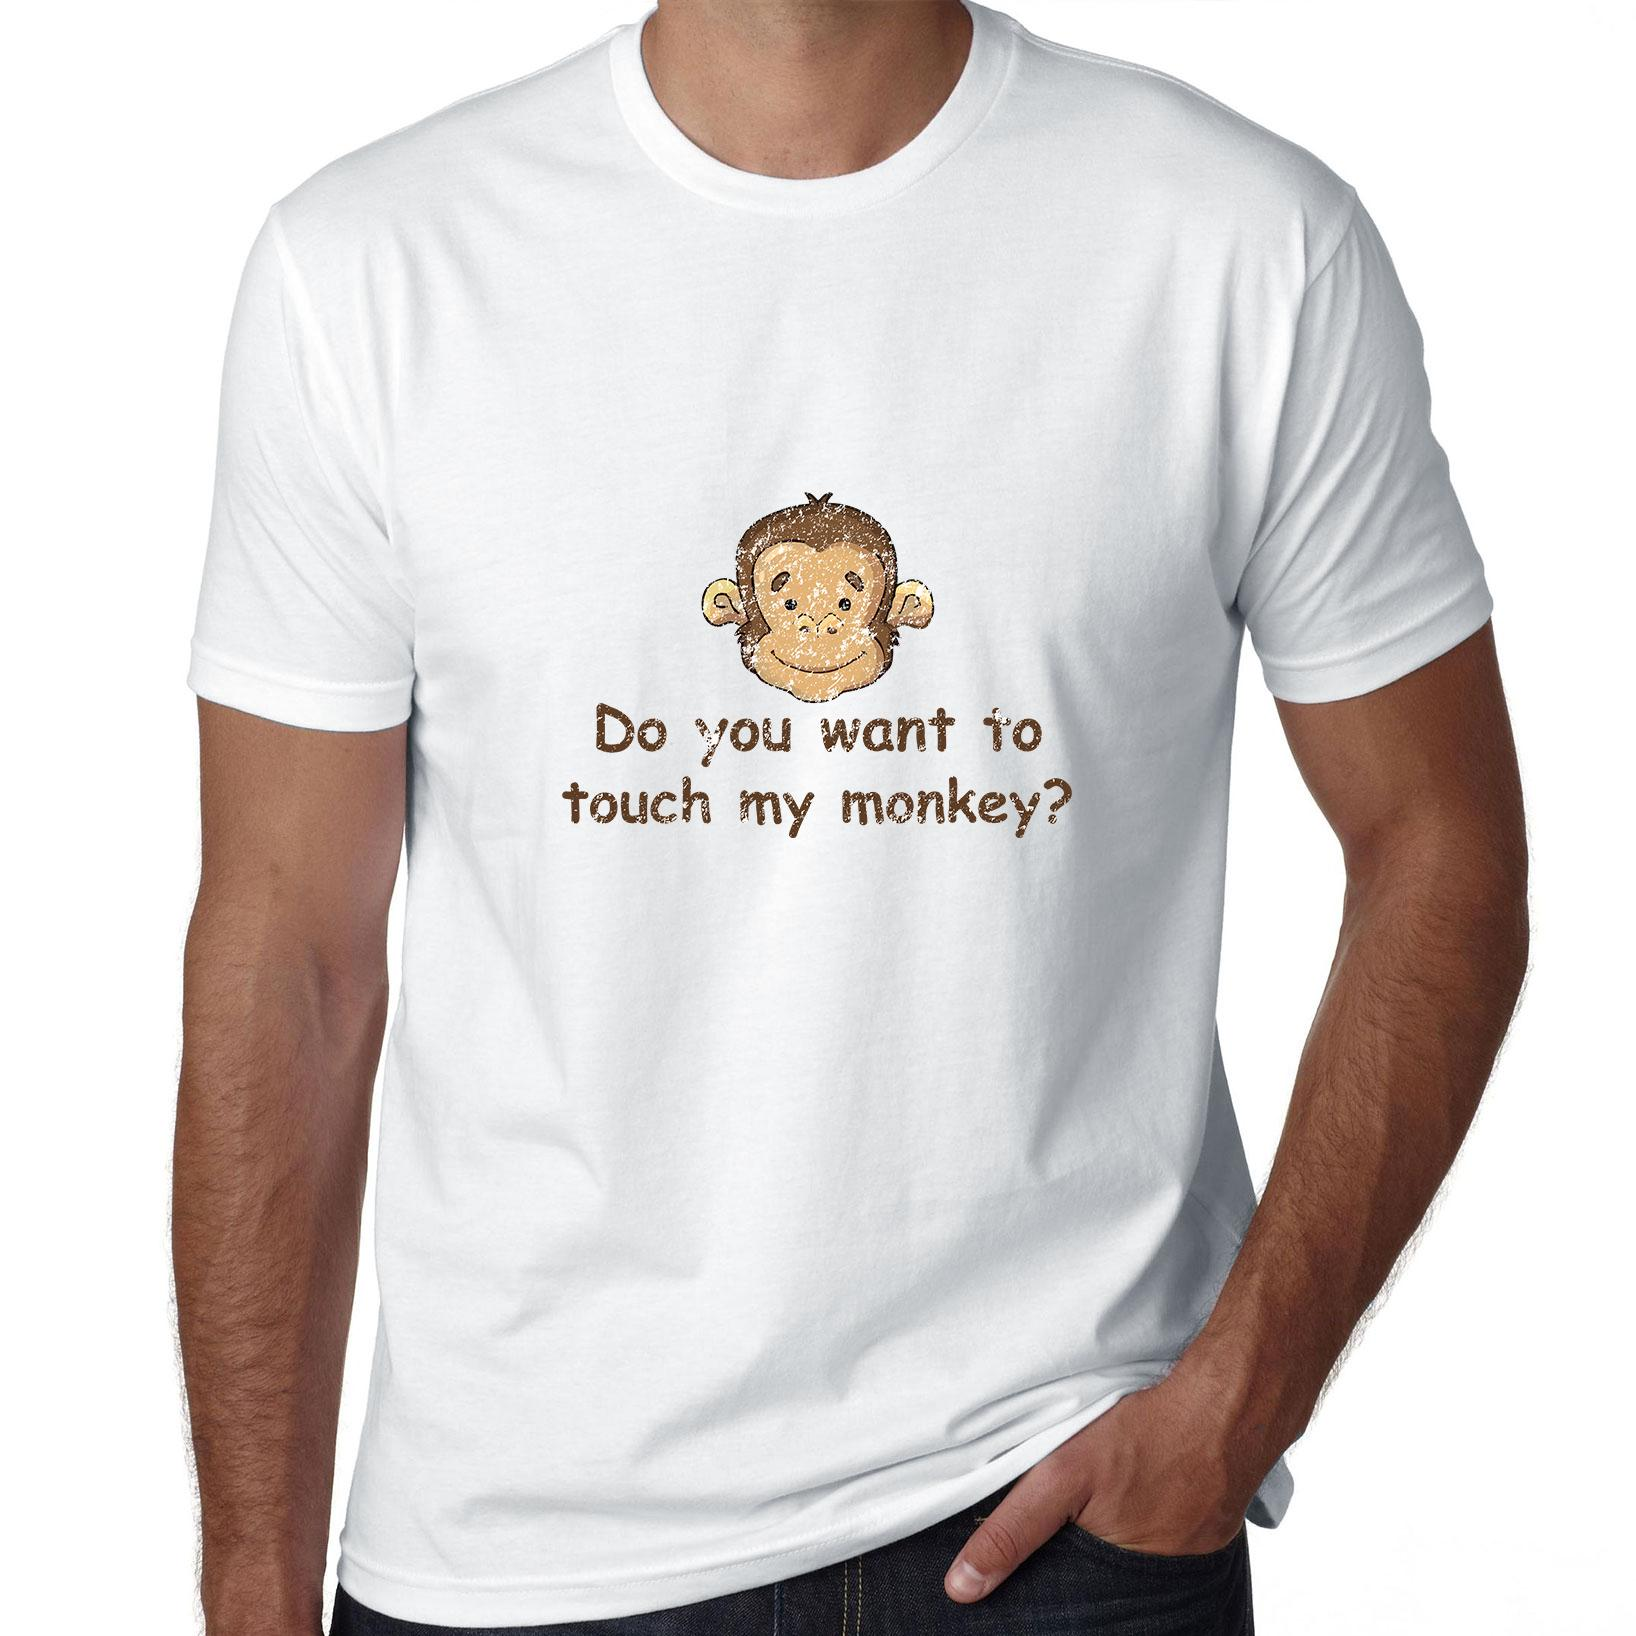 Do You Want To Touch My Monkey? - Funny Graphic Men's T-Shirt